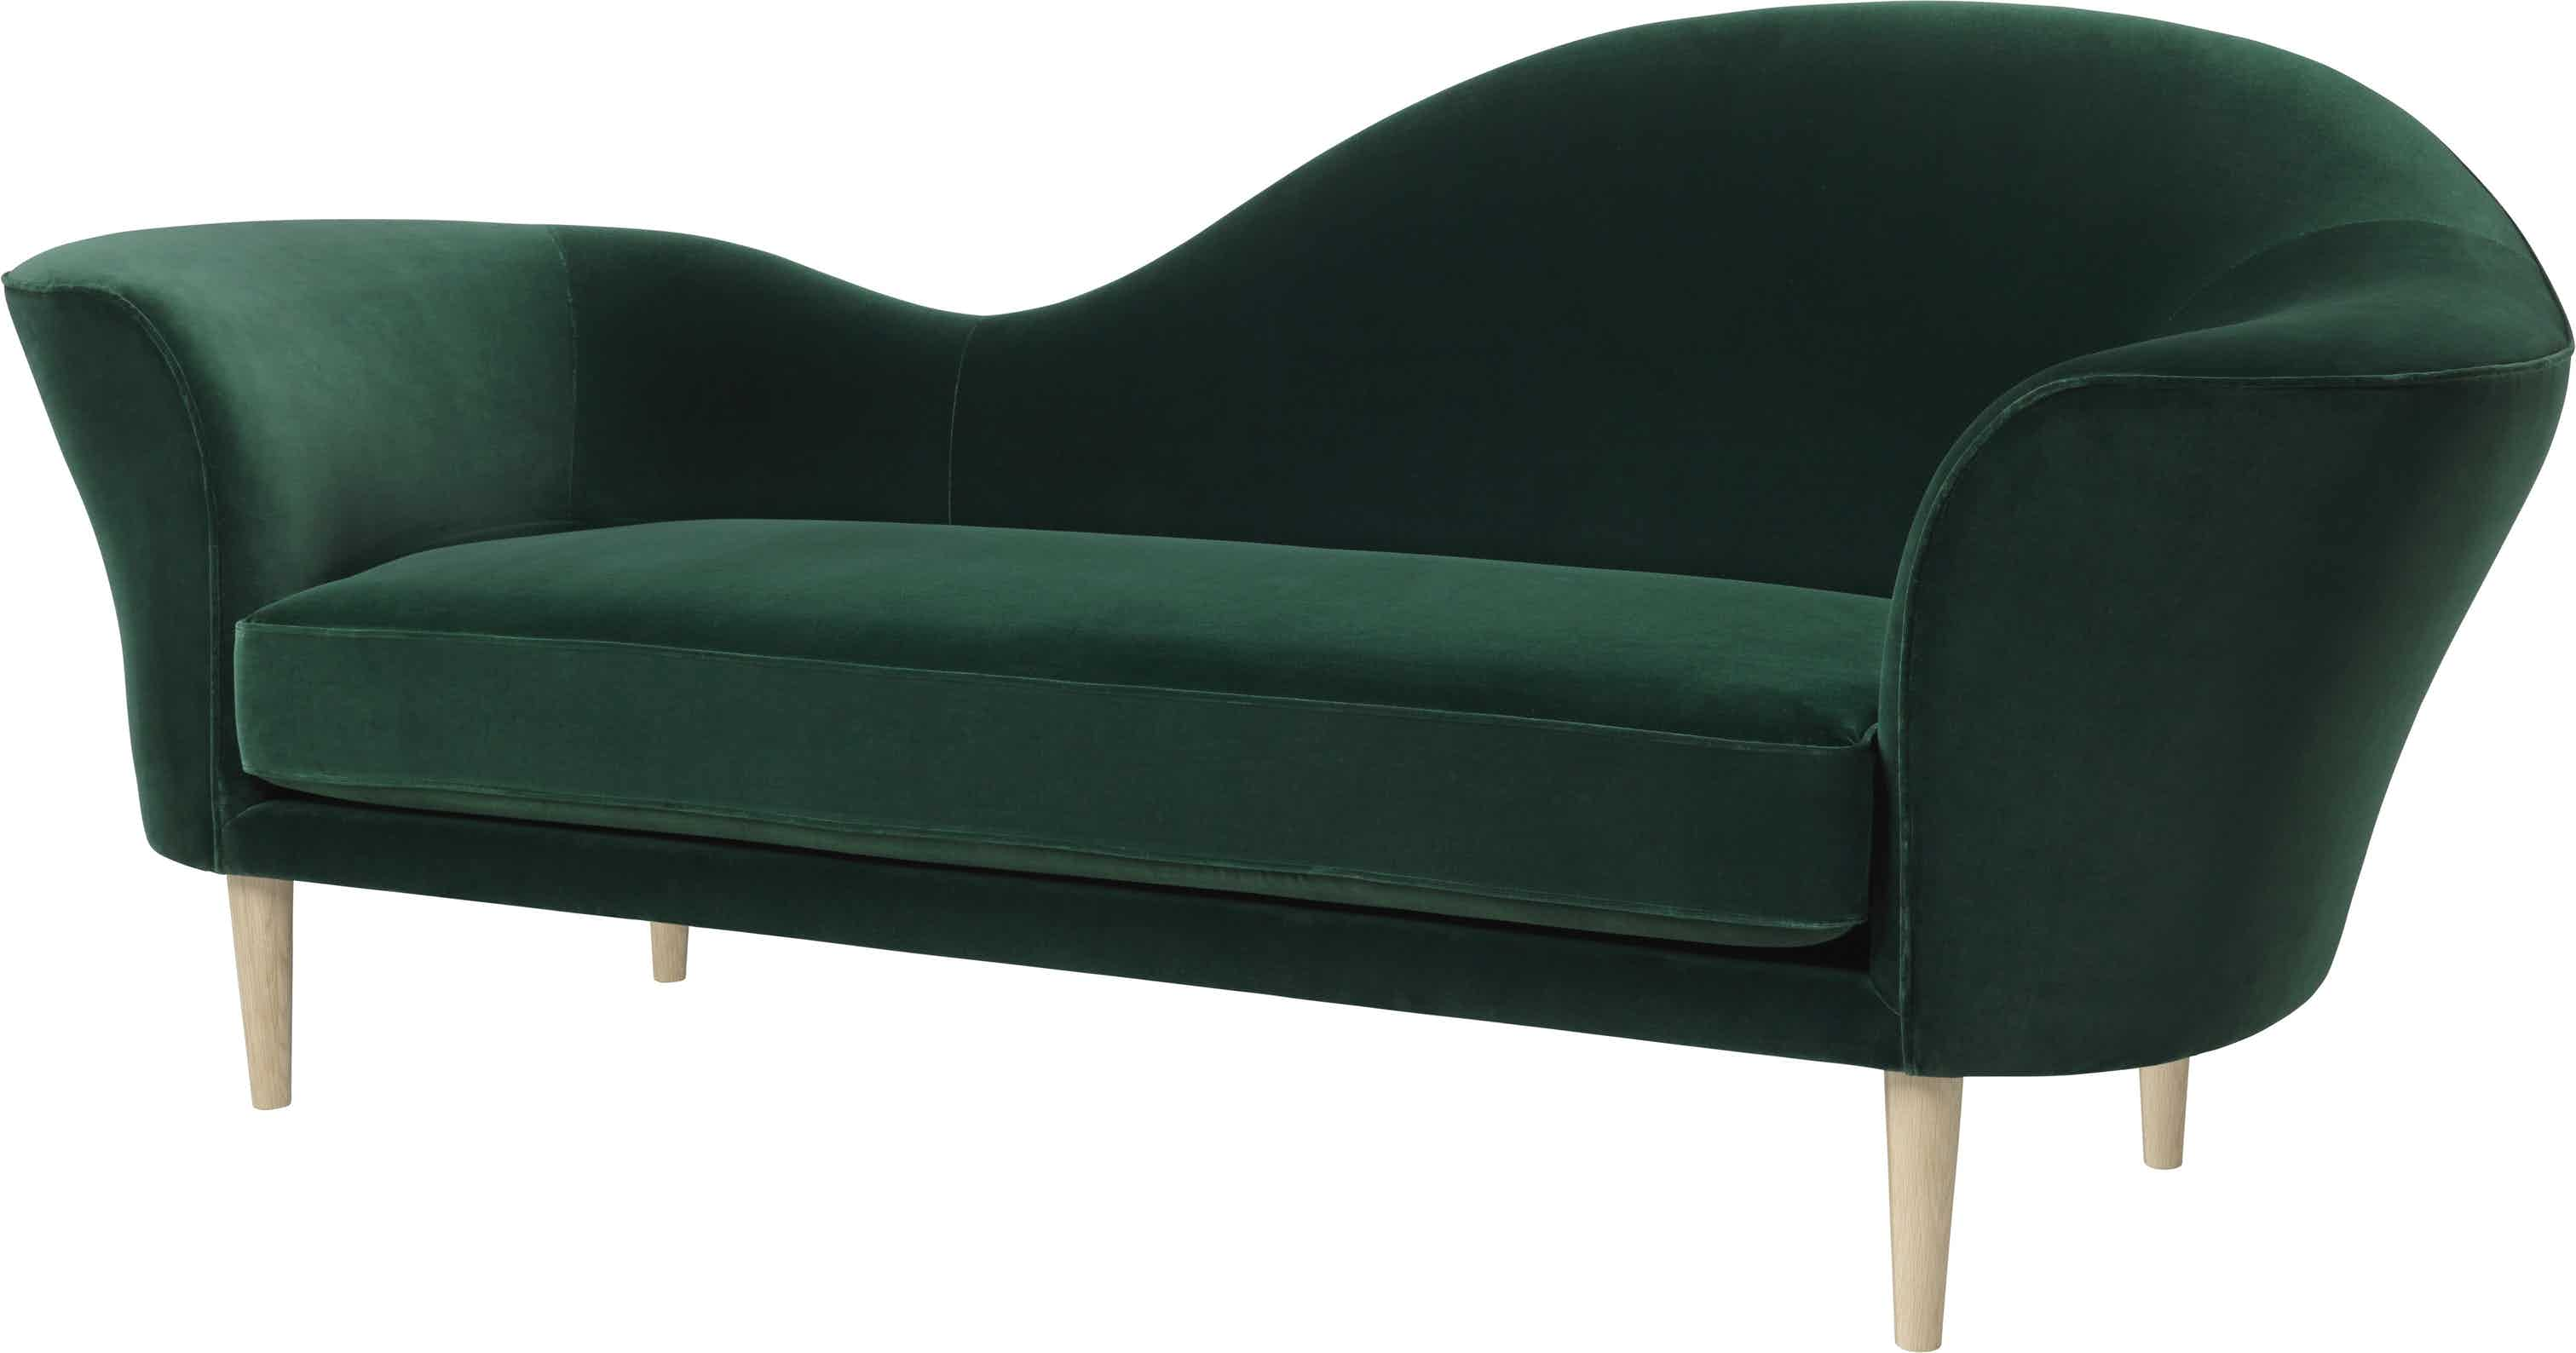 Gubi Grand Piano Sofa Green Angle Haute Living